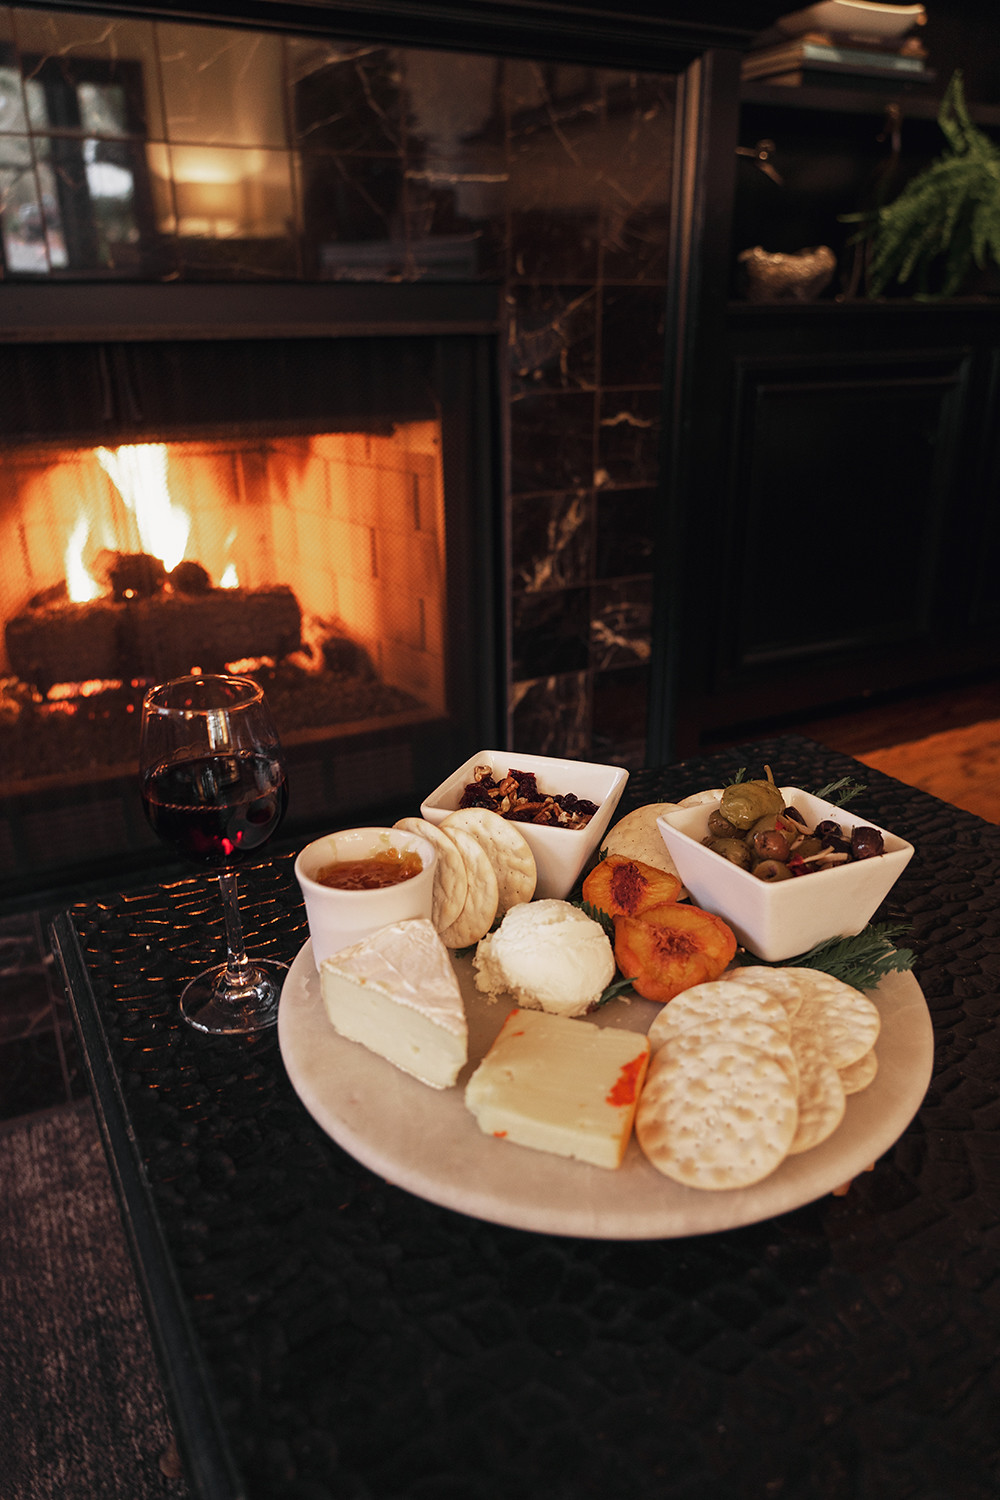 14gaigehouse_ryokan_sonoma_travel_fireplace-cheeseplate